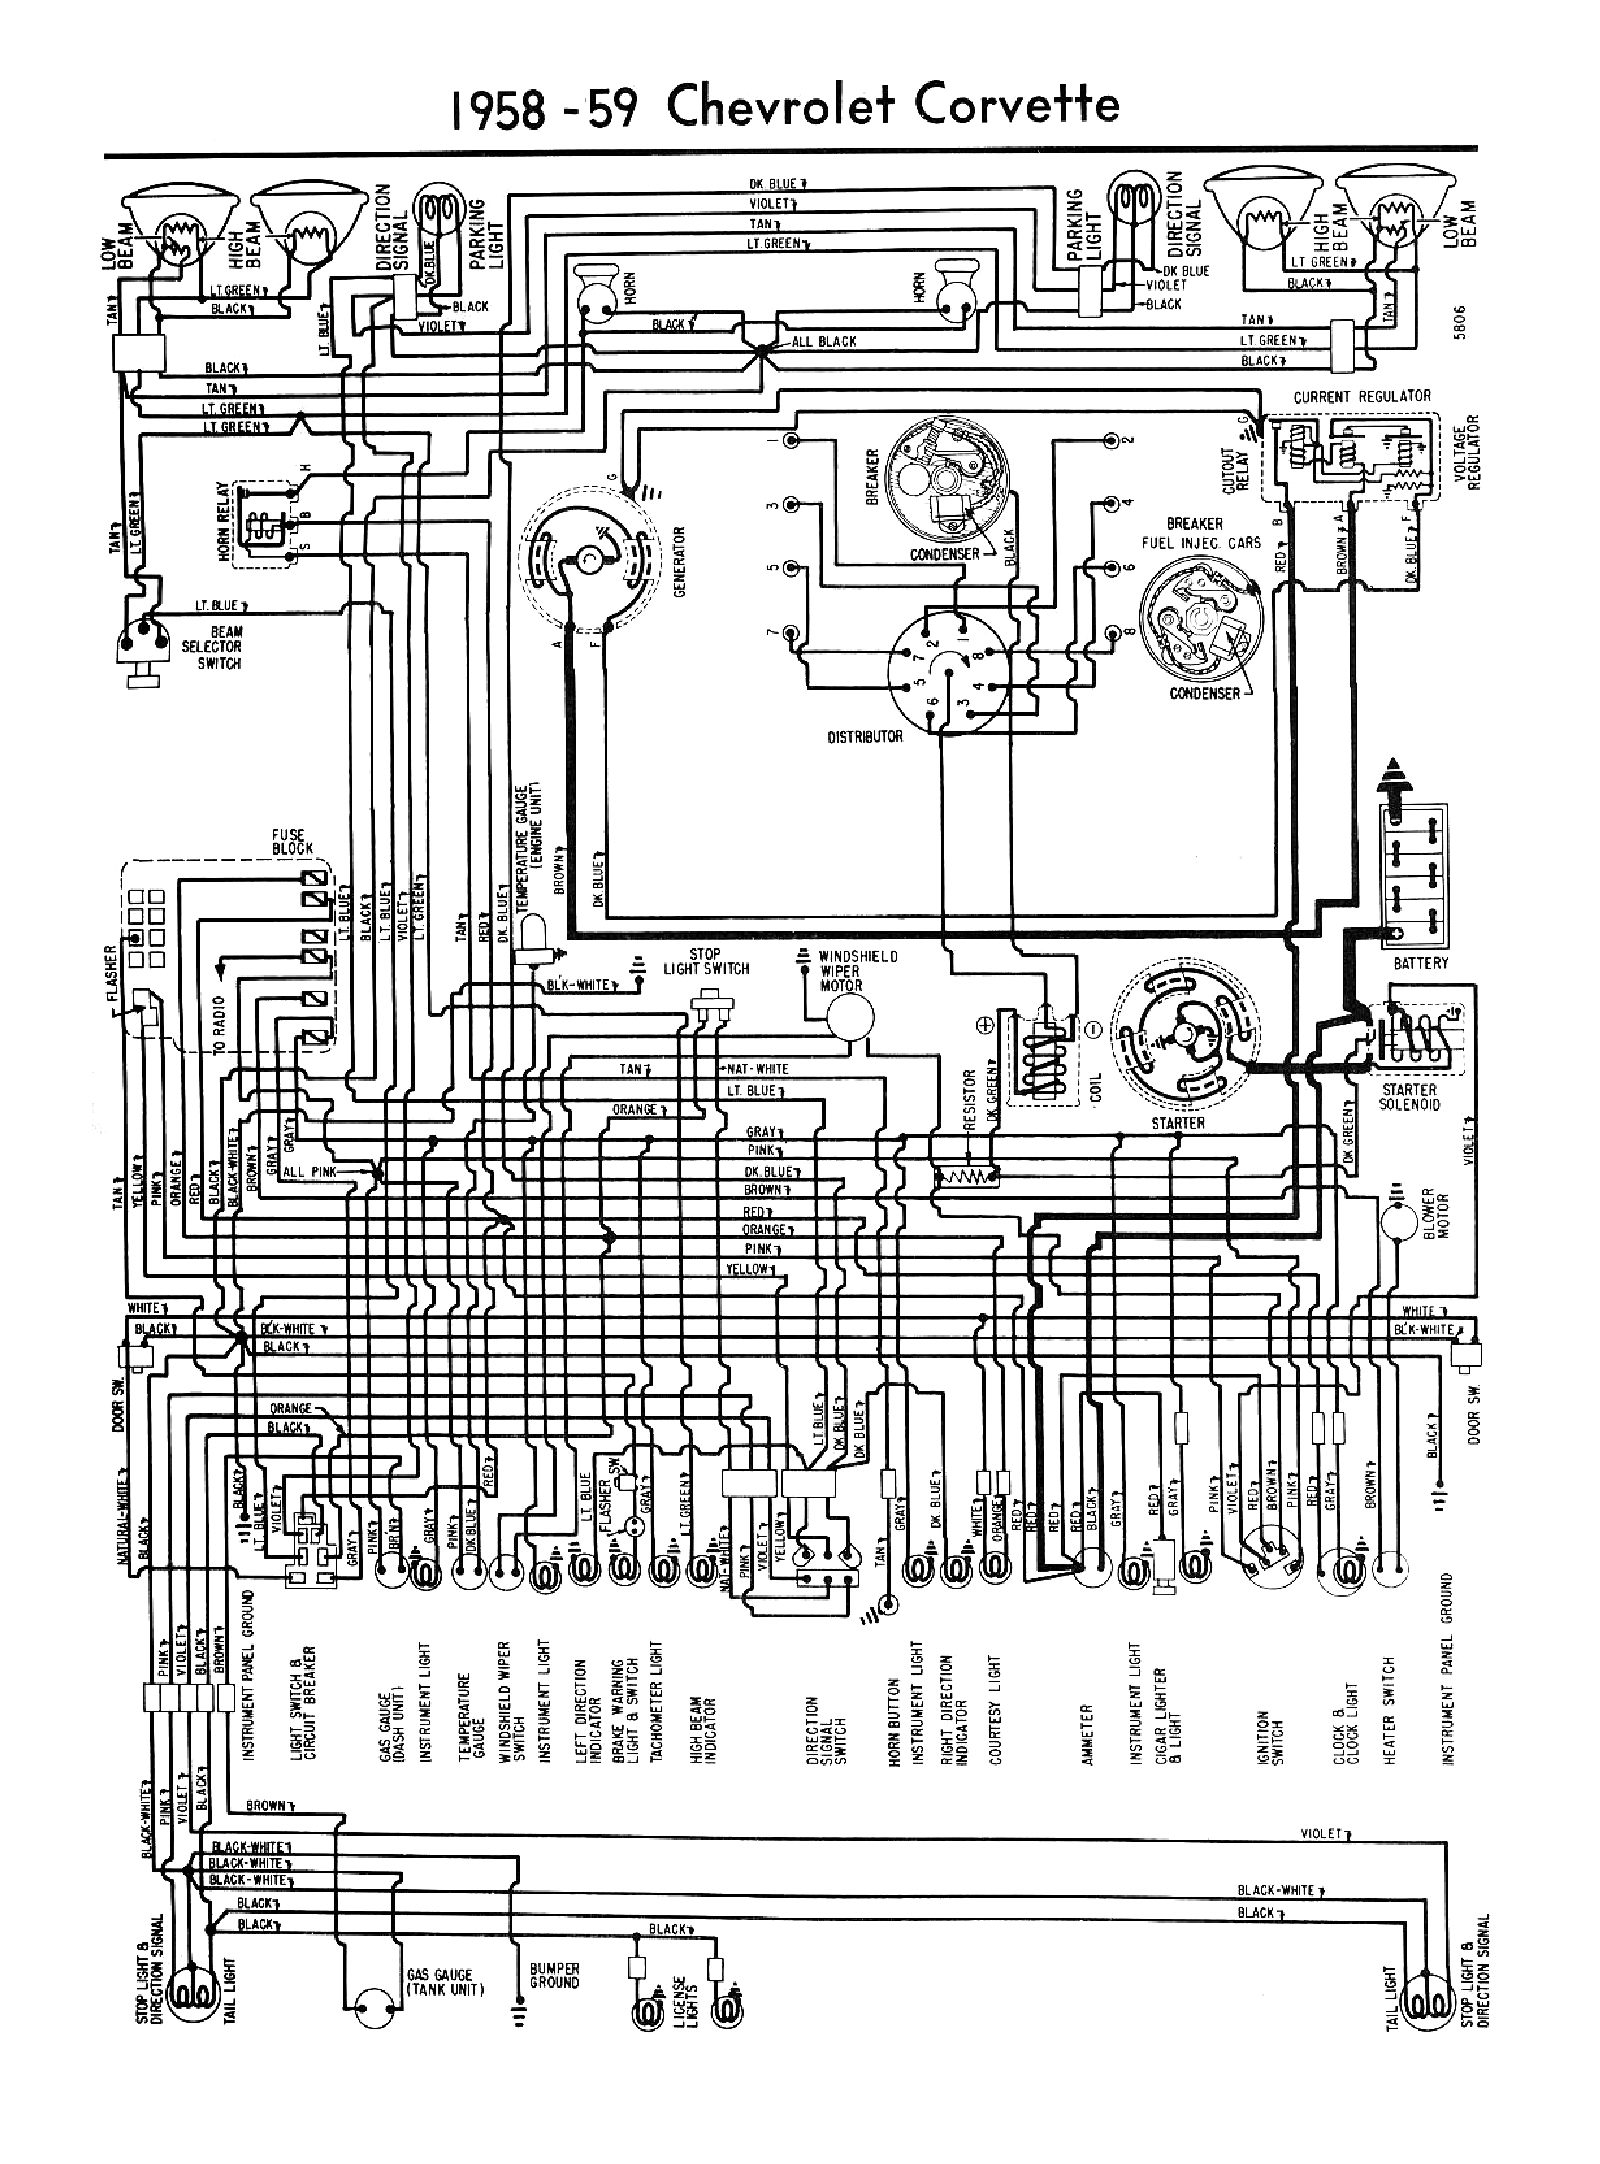 1958 chevrolet wiring diagram manual e books 59 Chevy Truck Wiring Diagram 1958 chevrolet steering column wiring wiring diagram1958 chevrolet steering column wiring wiring diagram library 1967 camaro